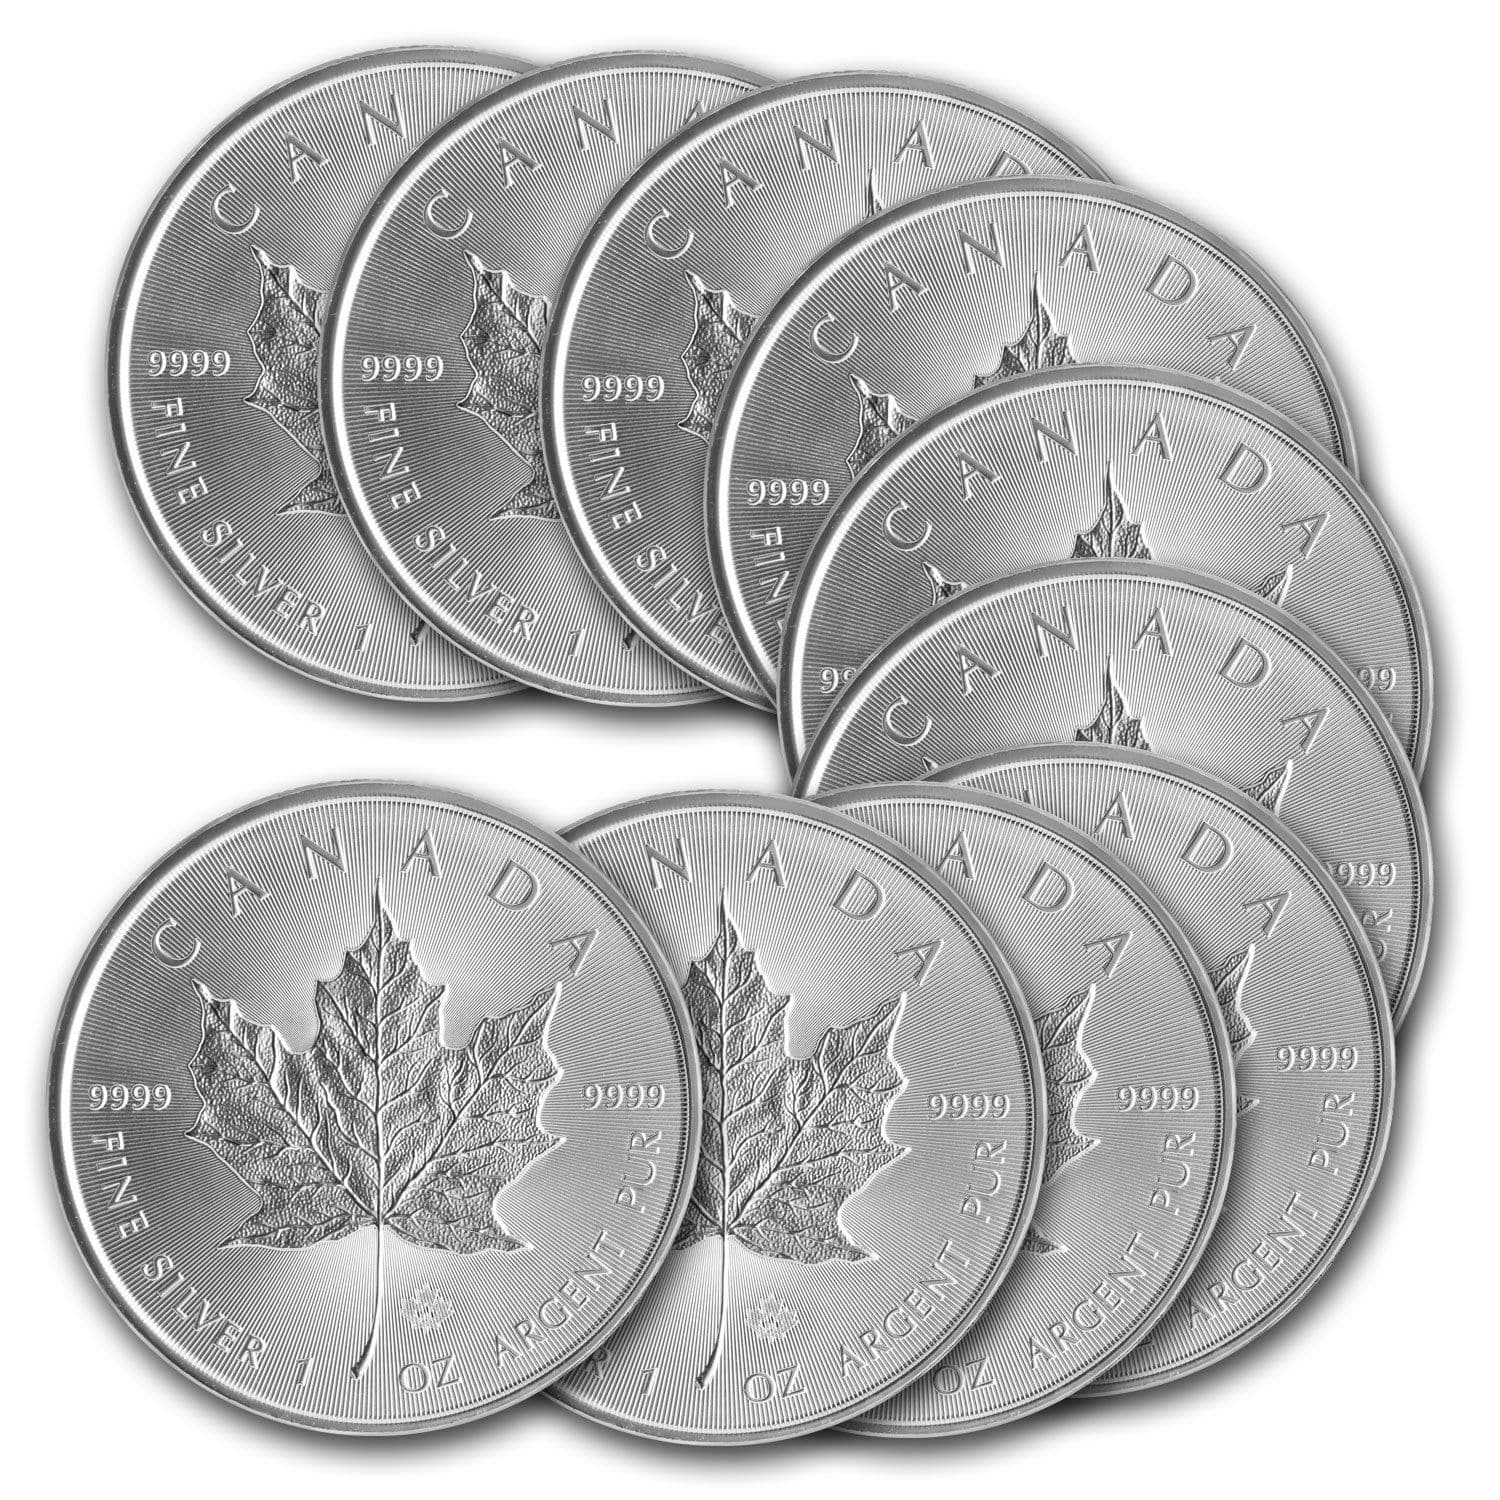 2014 1 oz Silver Canadian Maple Leaf Coin - Lot of 10 - SKU #79749 $220 FS @EBay via APMEX